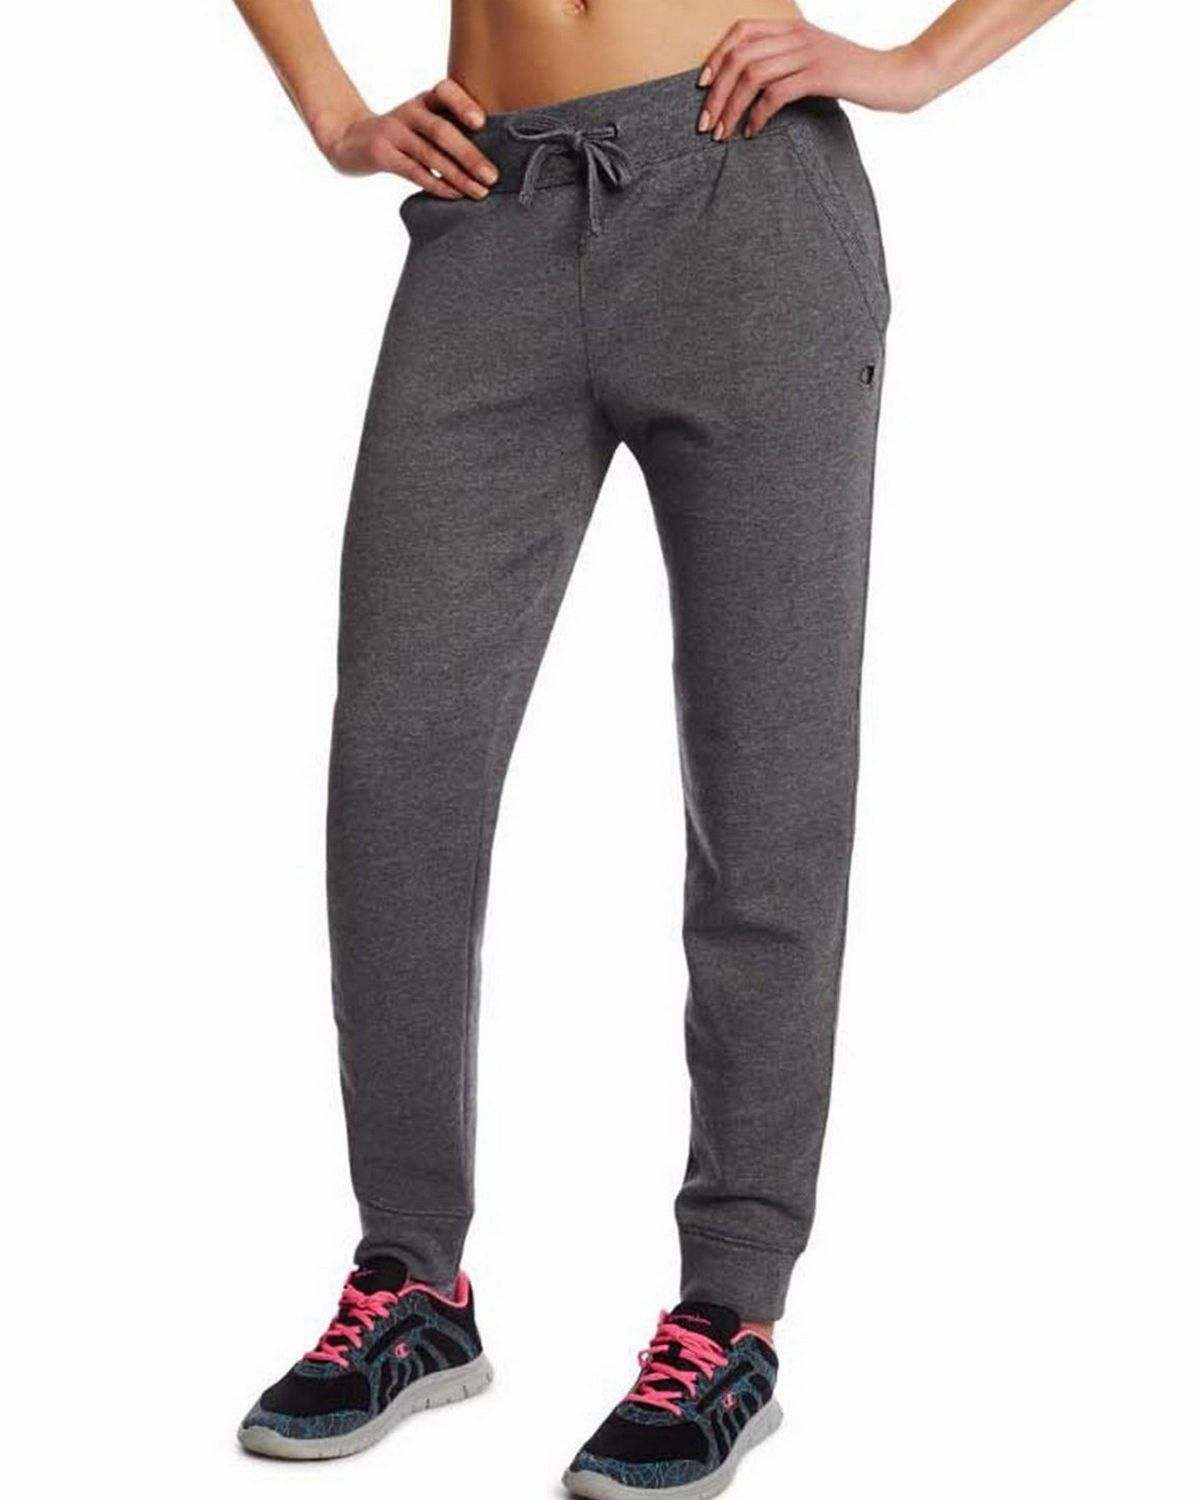 Champion M0937 Womens Fleece Jogger Pants - Granite Heather - M M0937